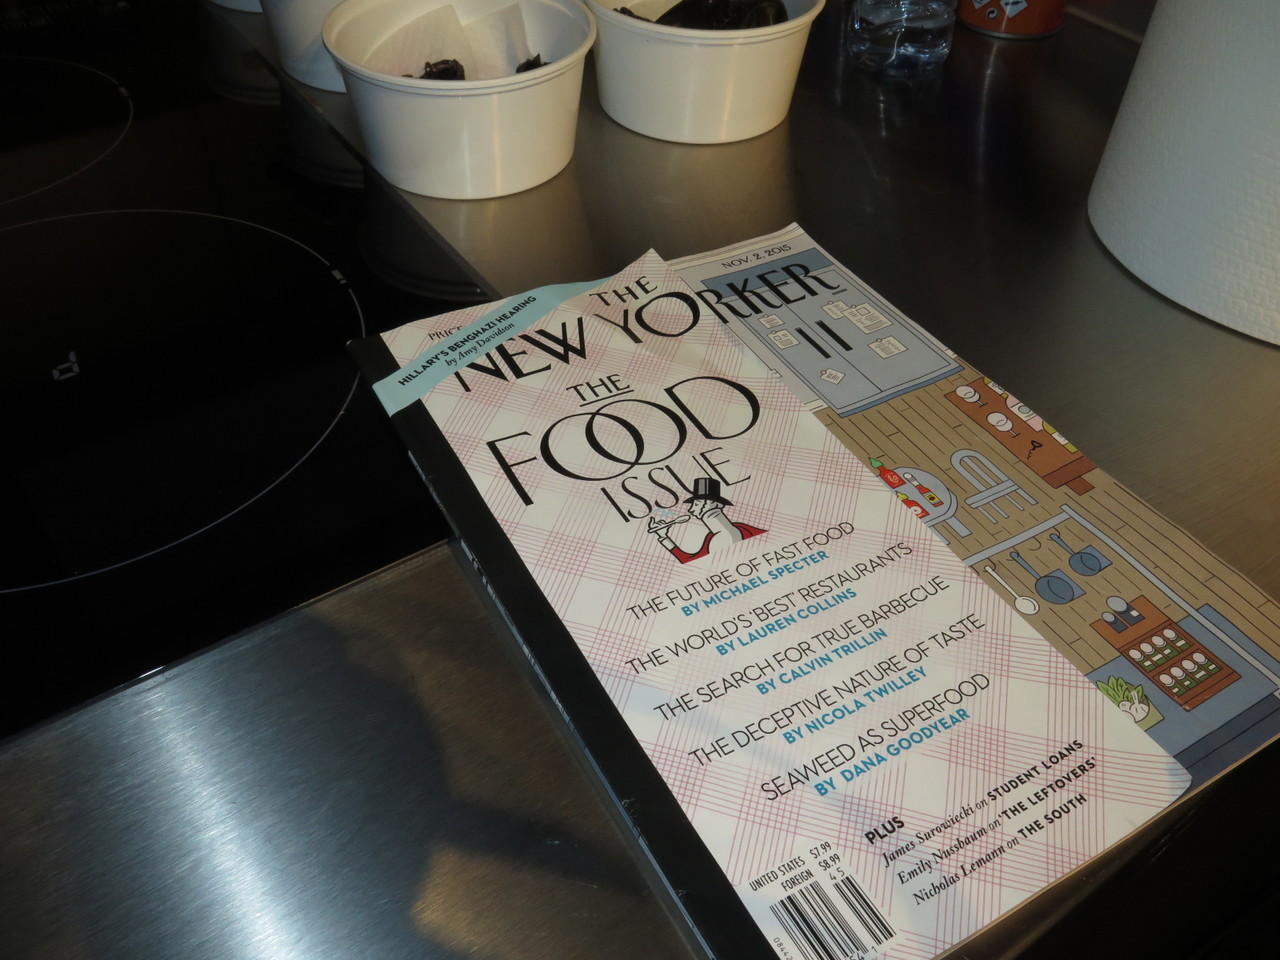 'Seaweed as Superfood', um texto inspirador no food issue da revista The New Yorker